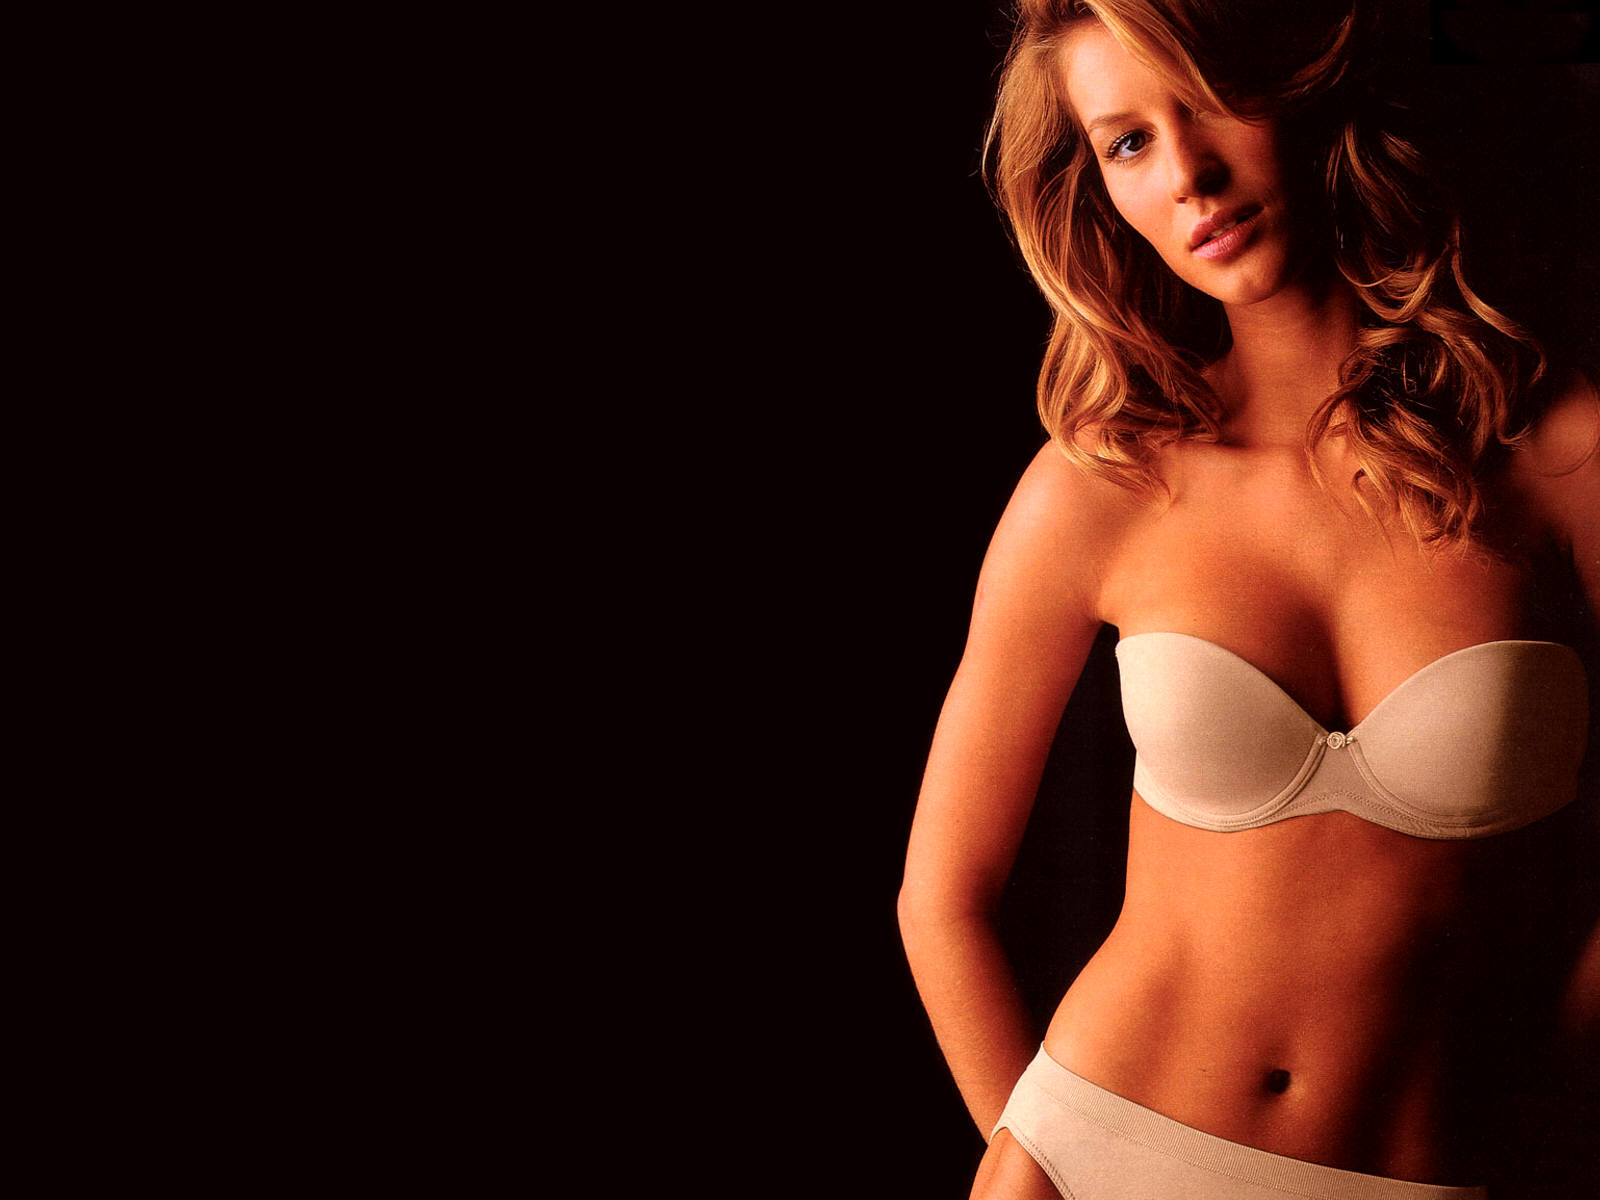 Gisele Bundchen Wallpapers & Pictures | Hollywood Actress Wallpapers | HD Celebrity Wallpapers ...